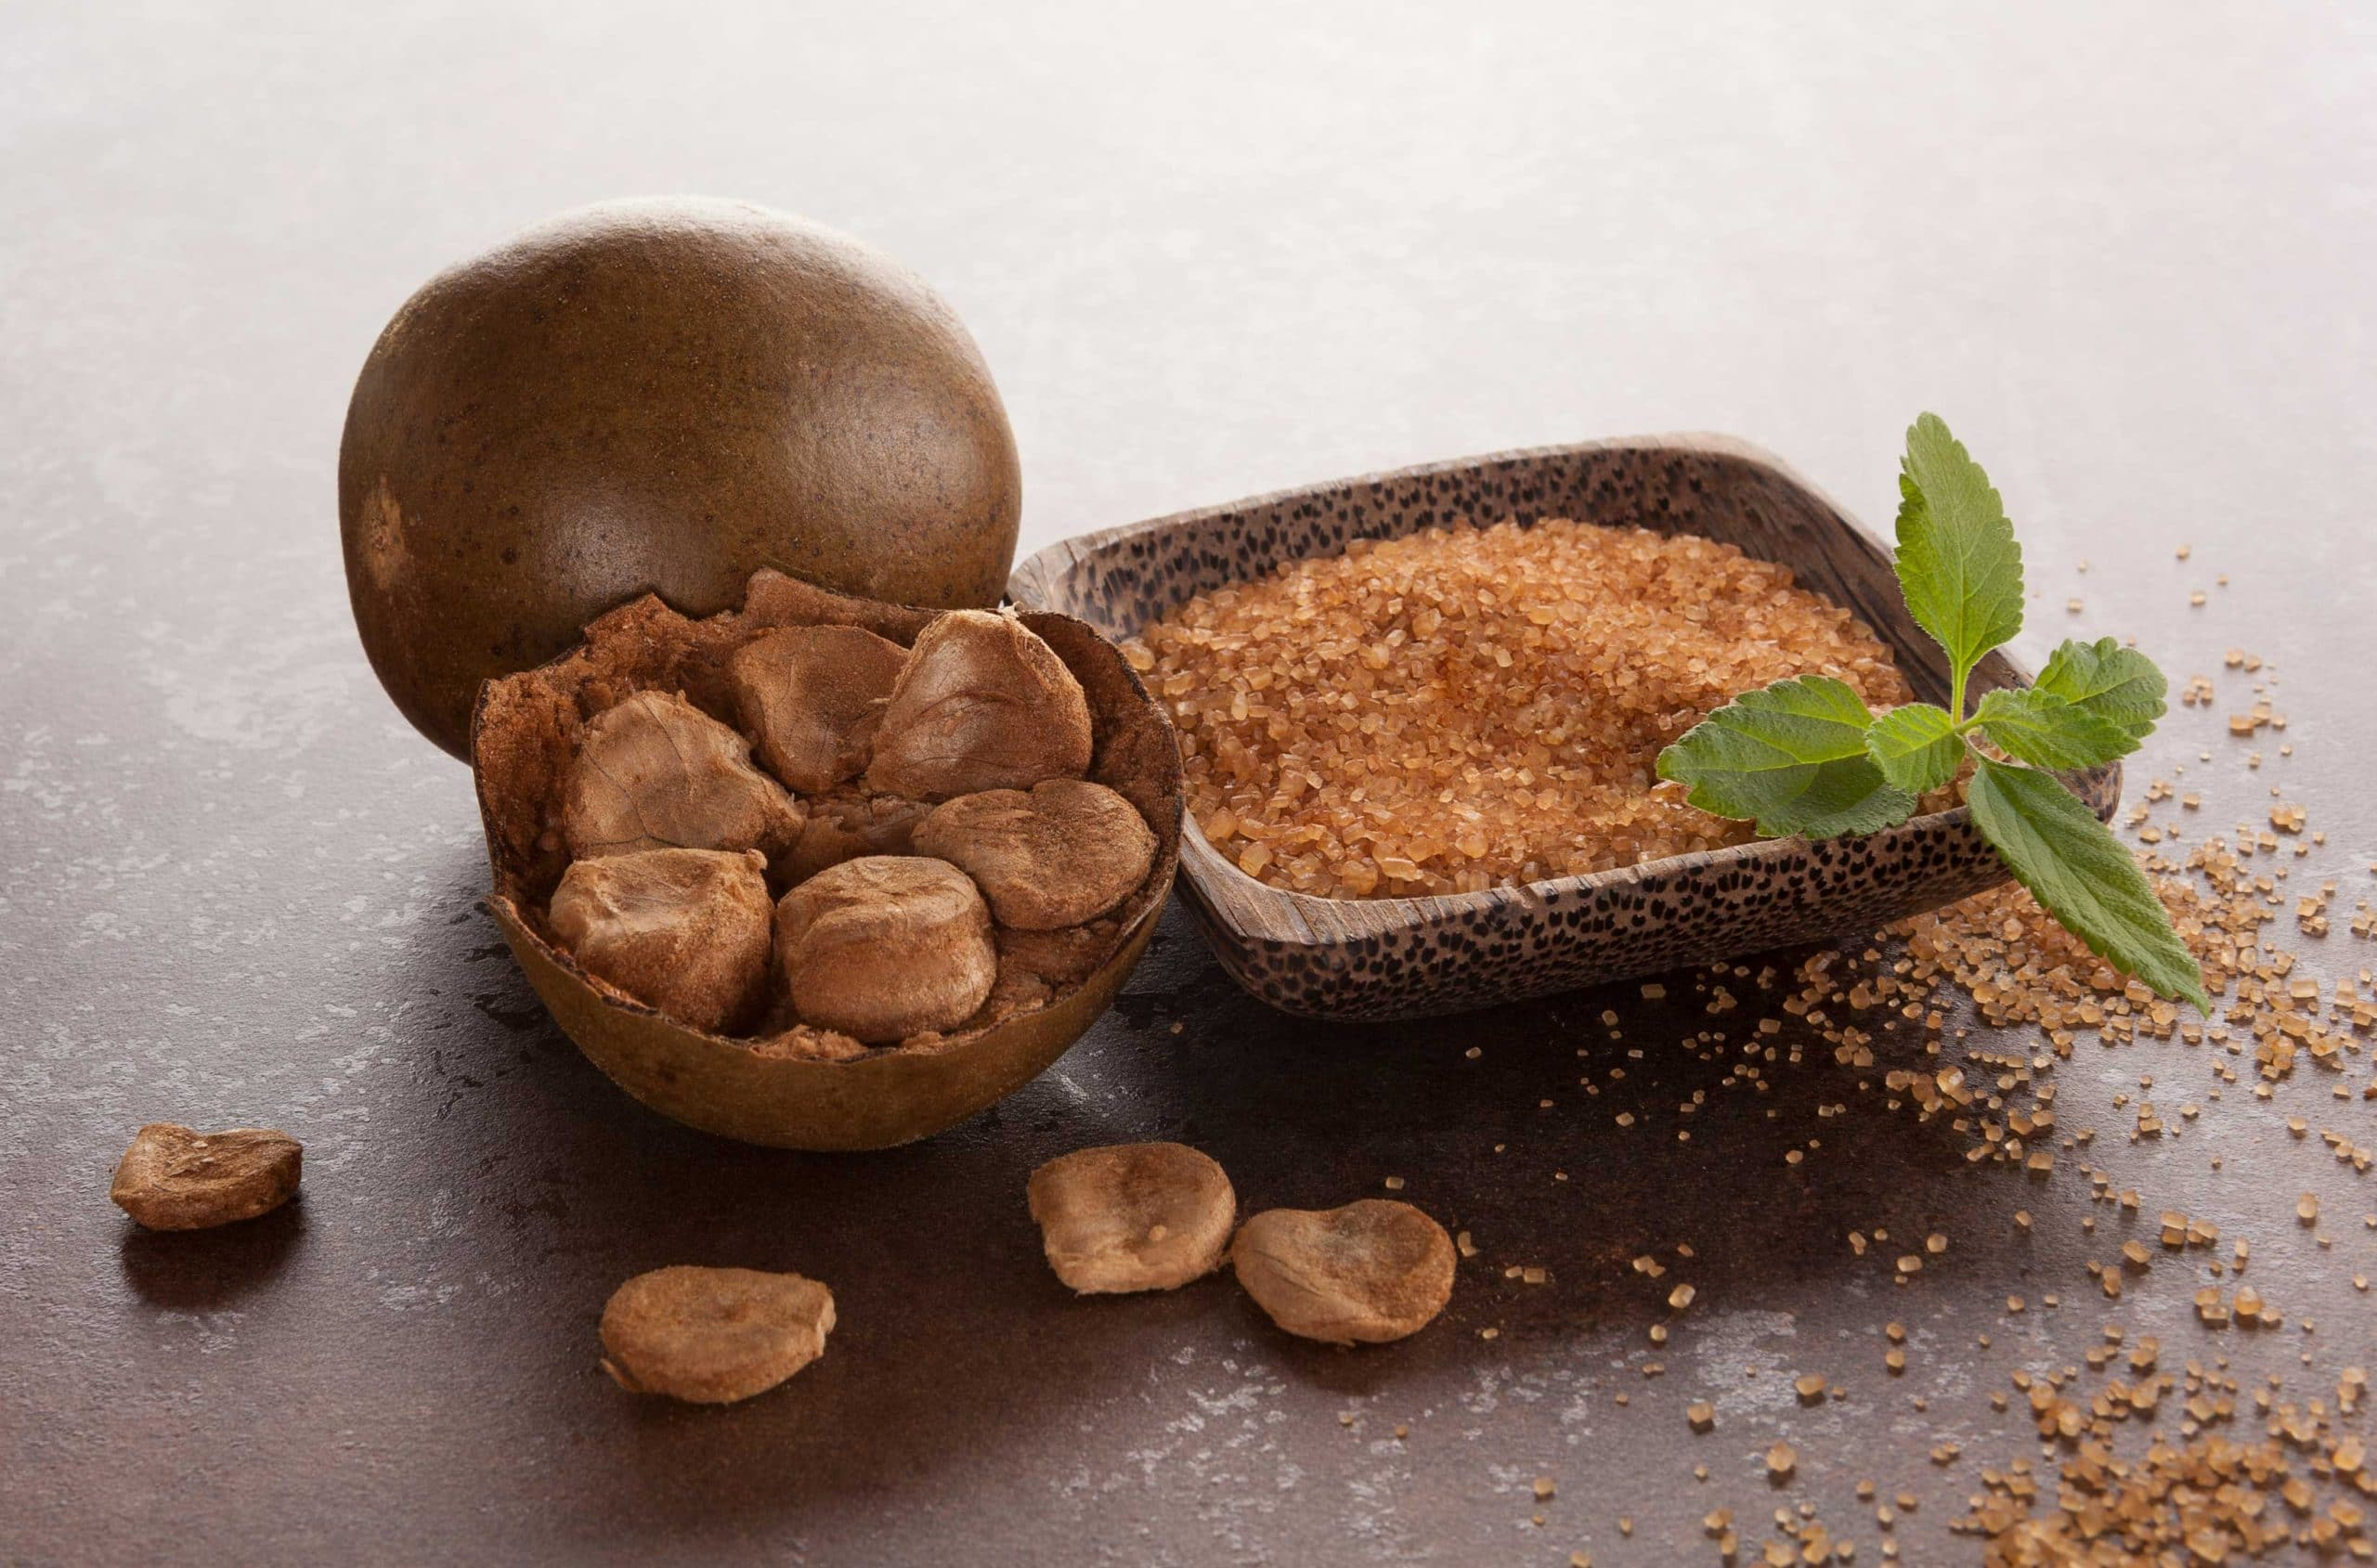 Photo of a wooden bowl of granulated monk fruit with a sprig of the plant on the edge of the bowl. The bowl is next to pieces of dried monk fruit and behind that is a piece of the whole monk fruit. They are all on a brown flat surface.